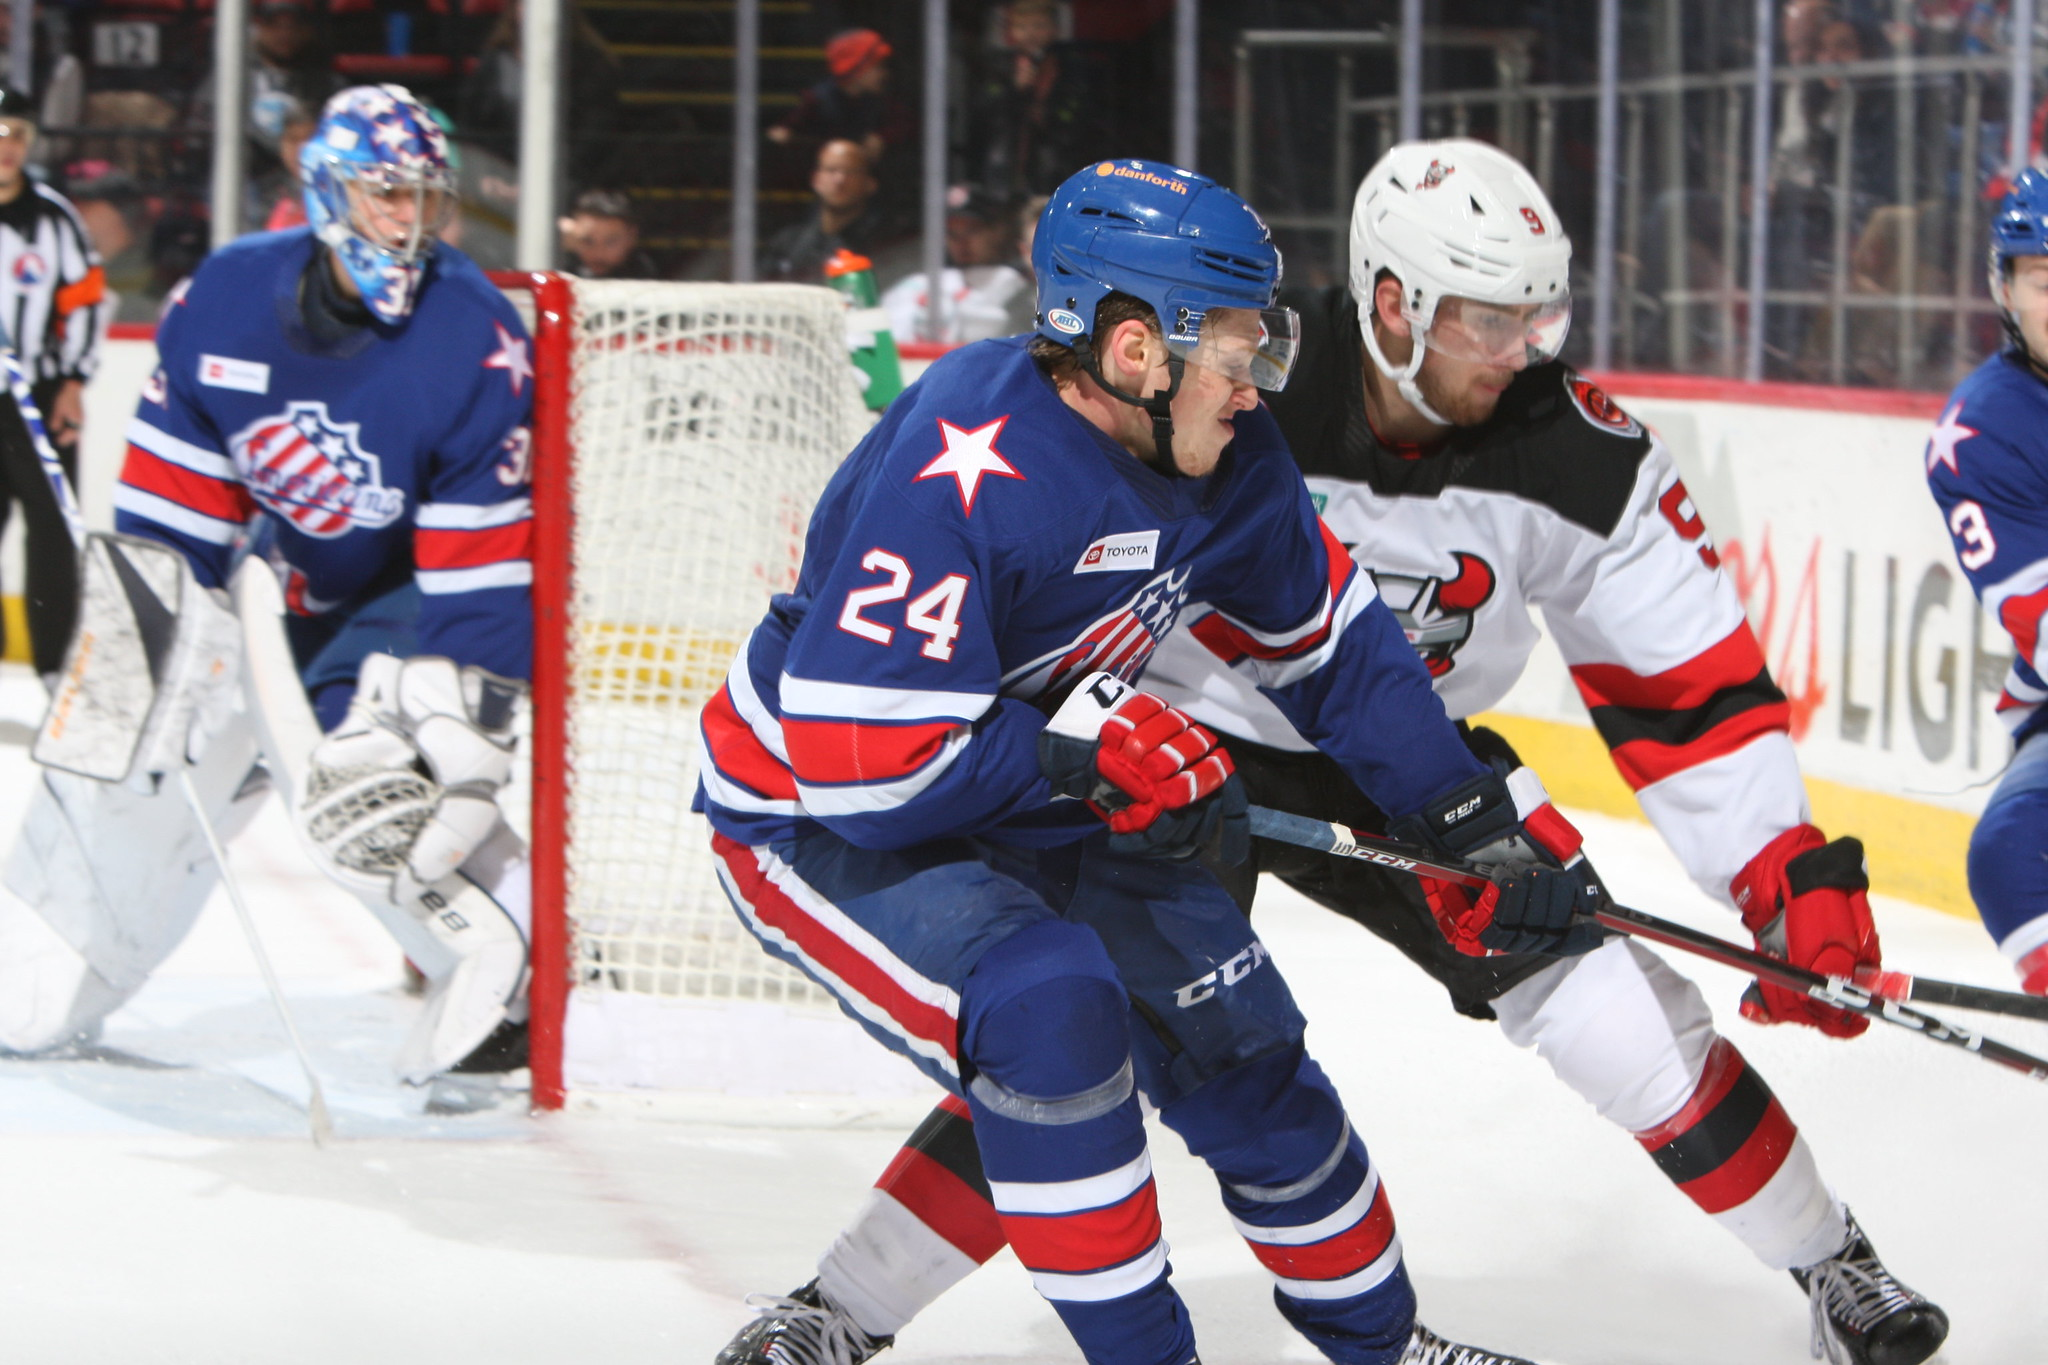 Recap: Amerks Extend Winning Streak to Five with a Close 4-2 Win